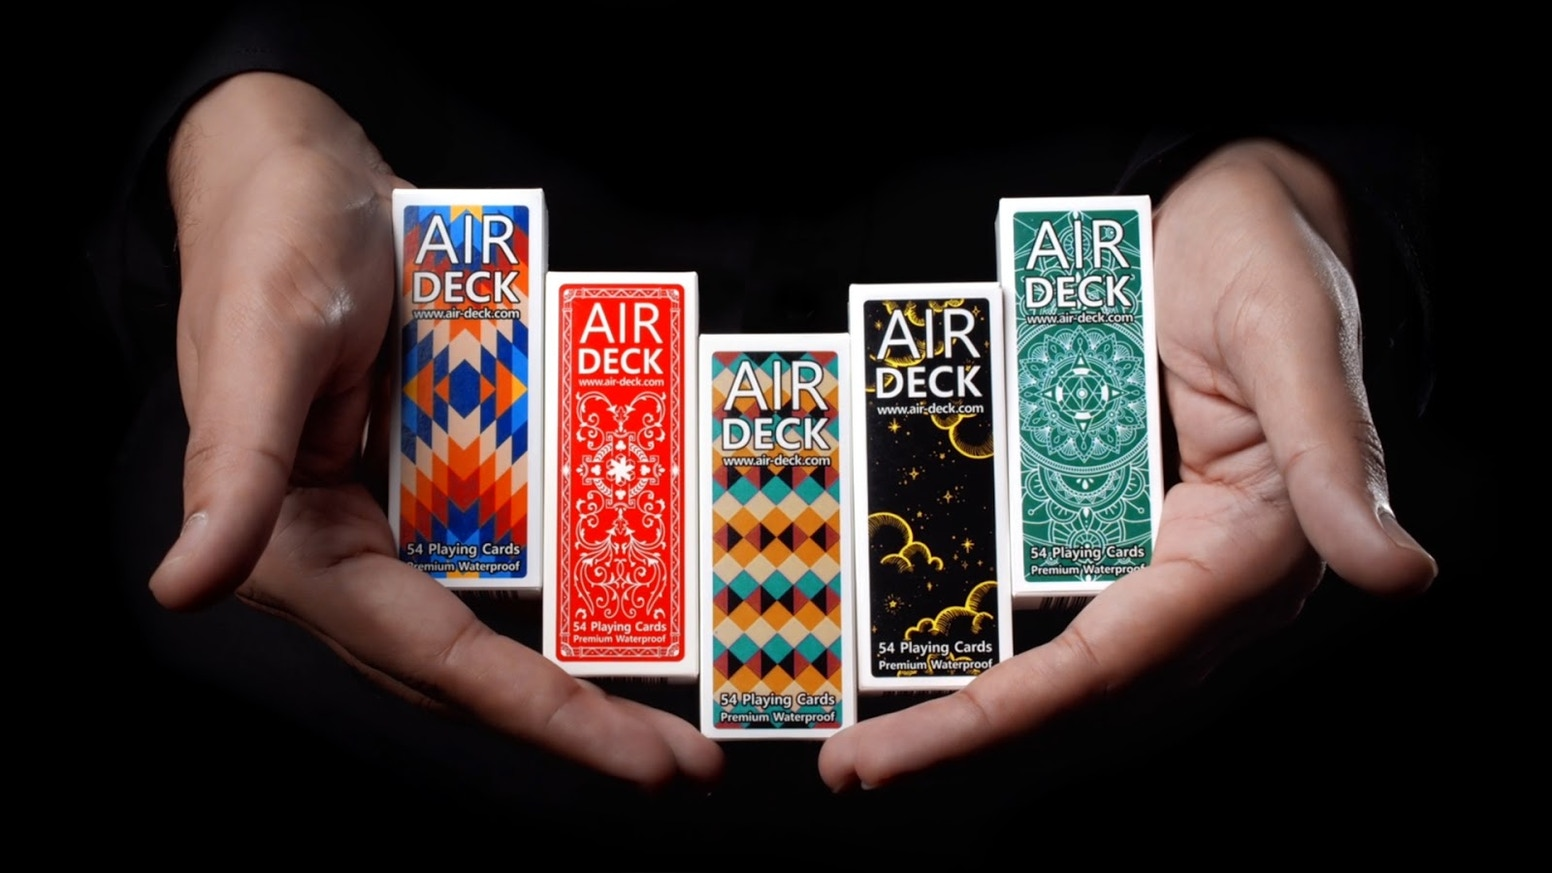 The super travel-optimized playing cards are back. Waterproof, compact, lightweight, and durable.